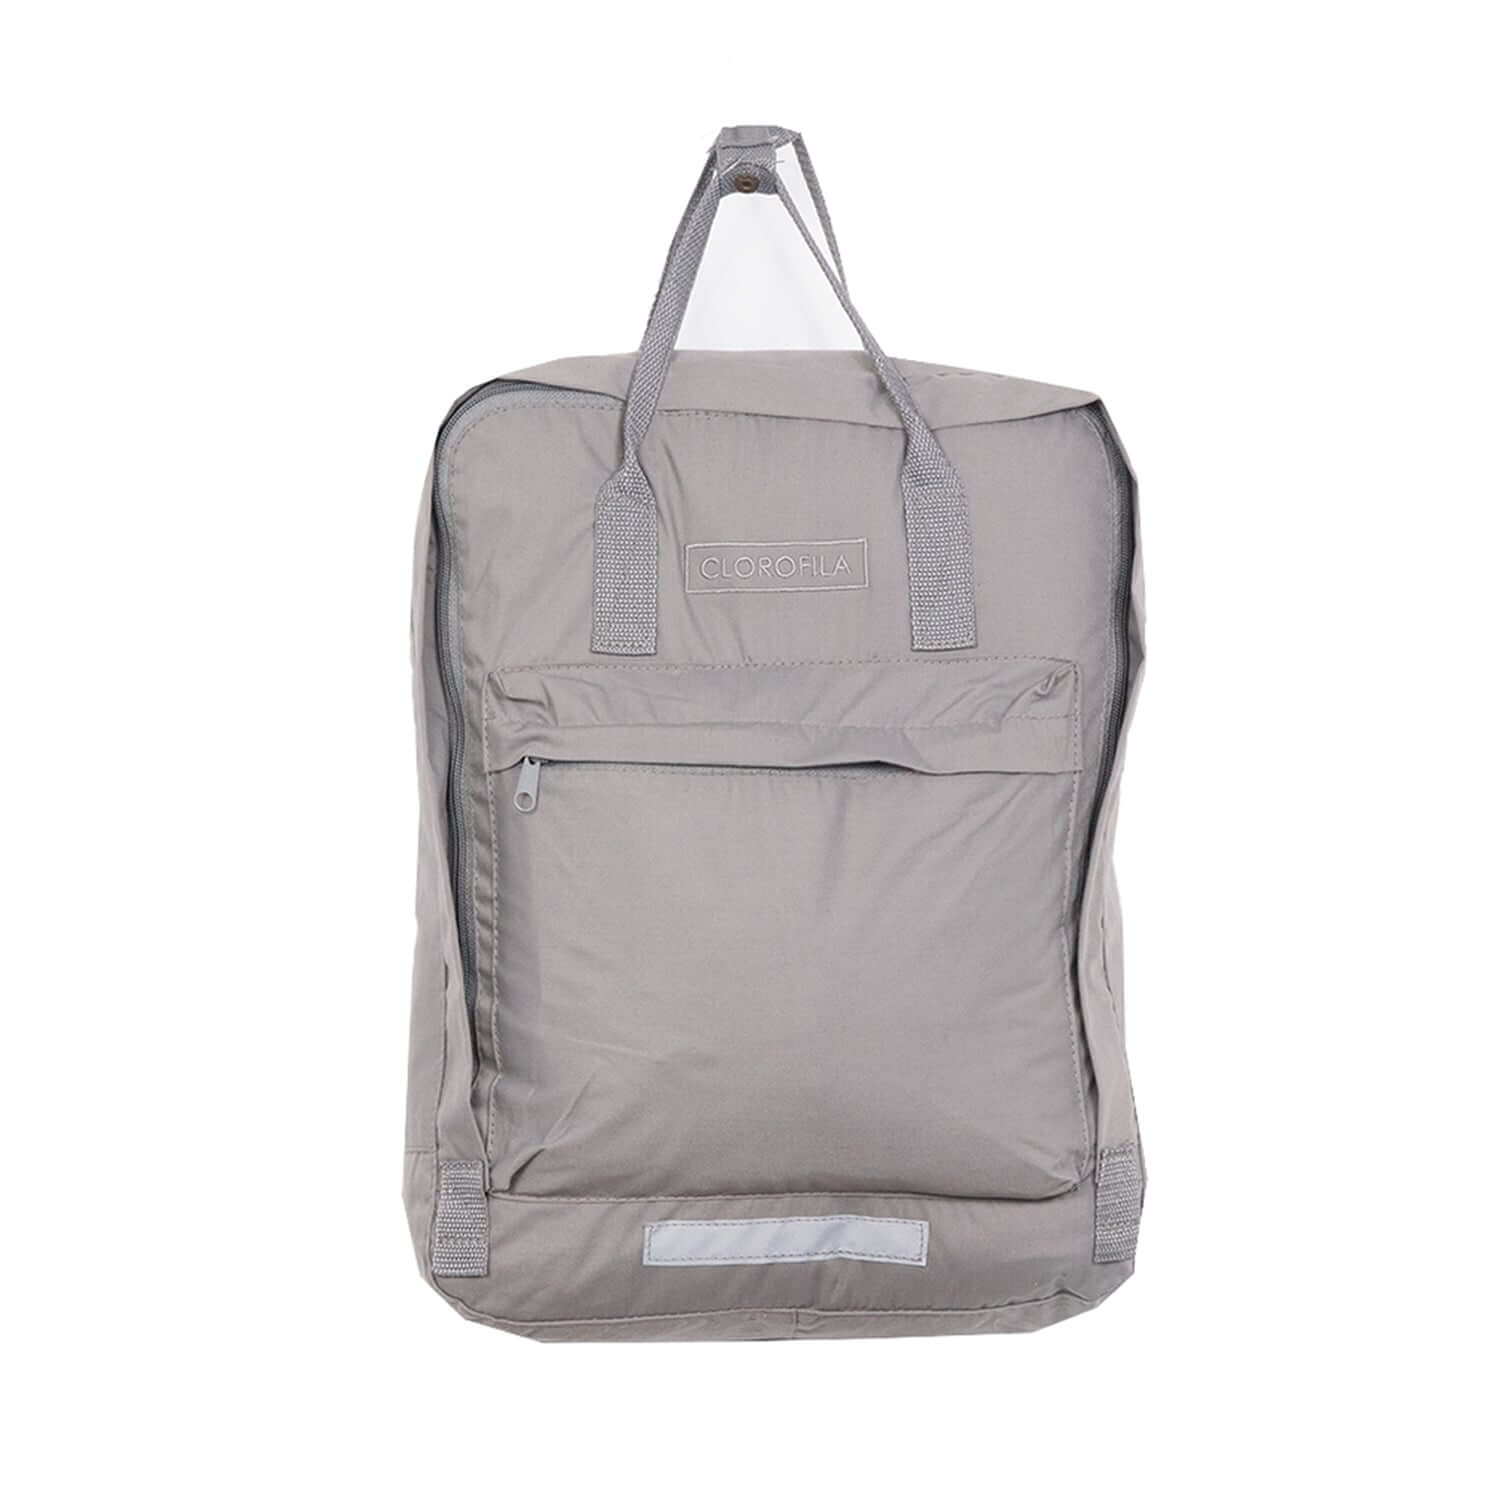 BACKPACK GREY - Clorofila Sea Wear